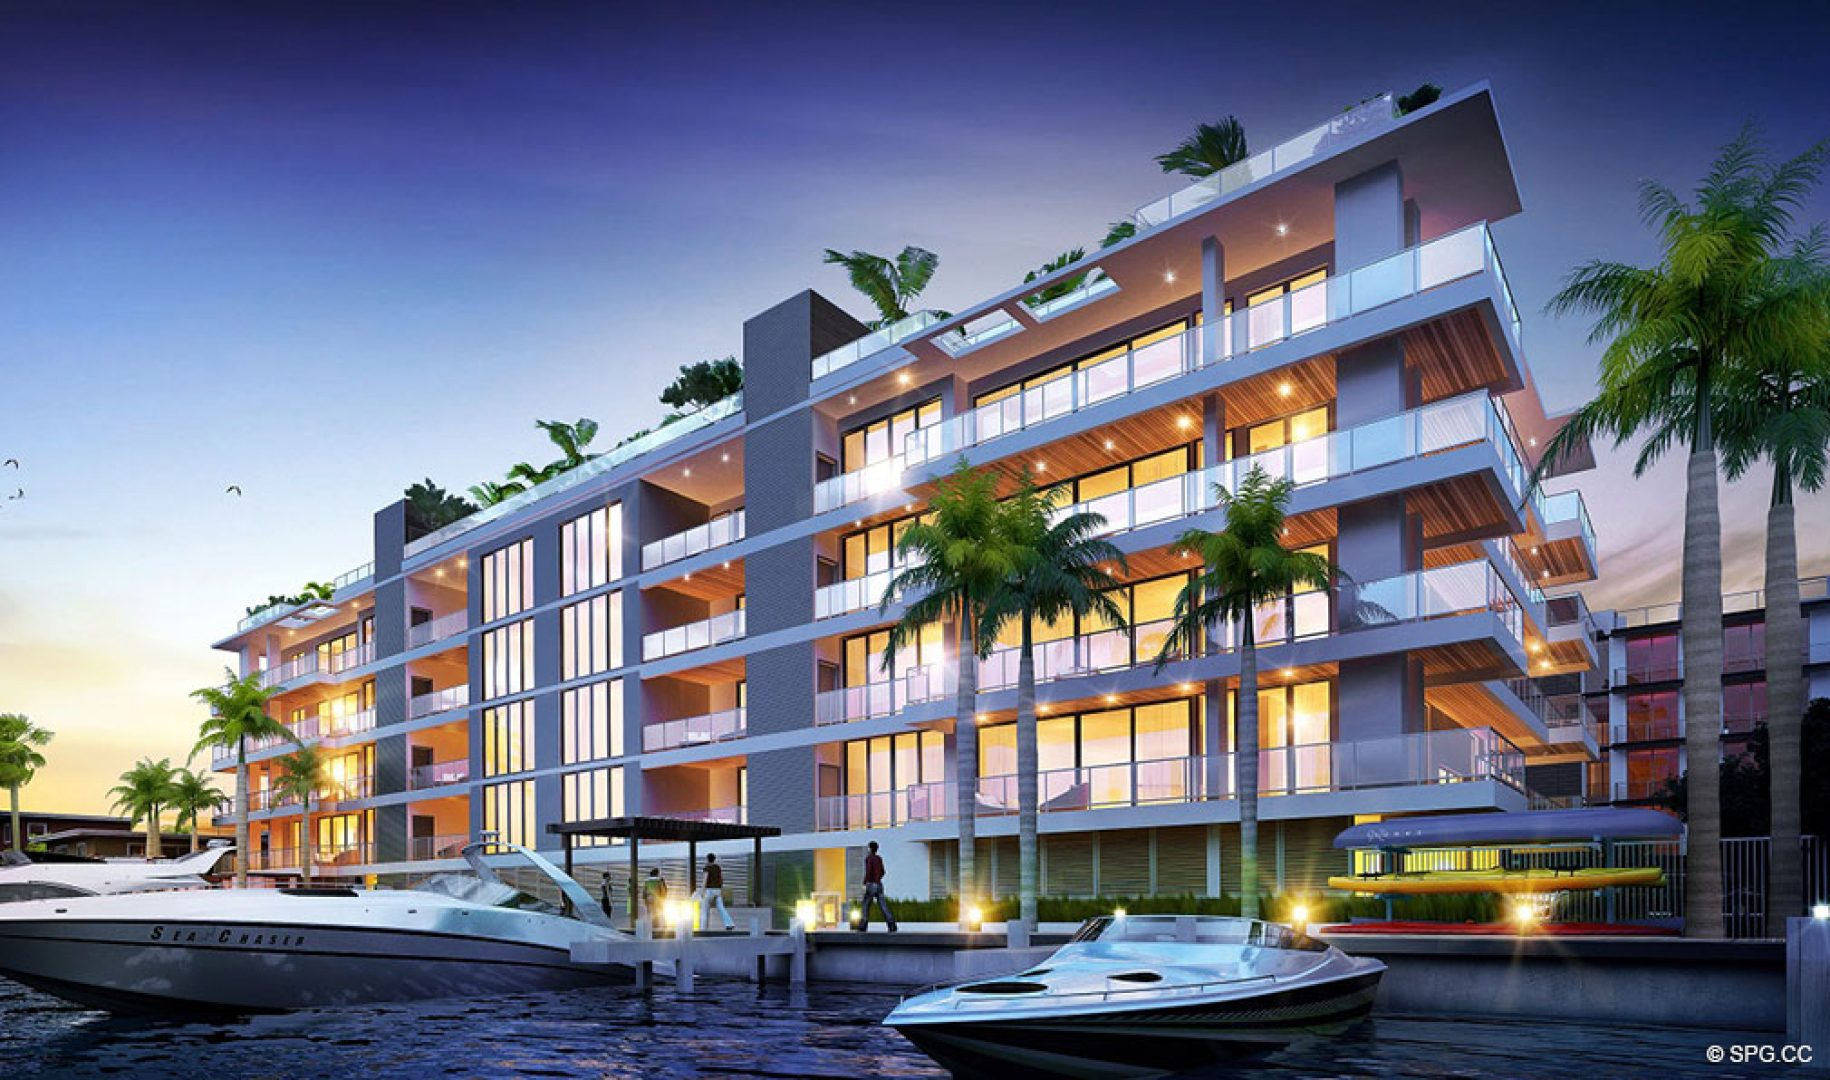 Aqualuna Las Olas Luxury Waterfront Condos In Fort